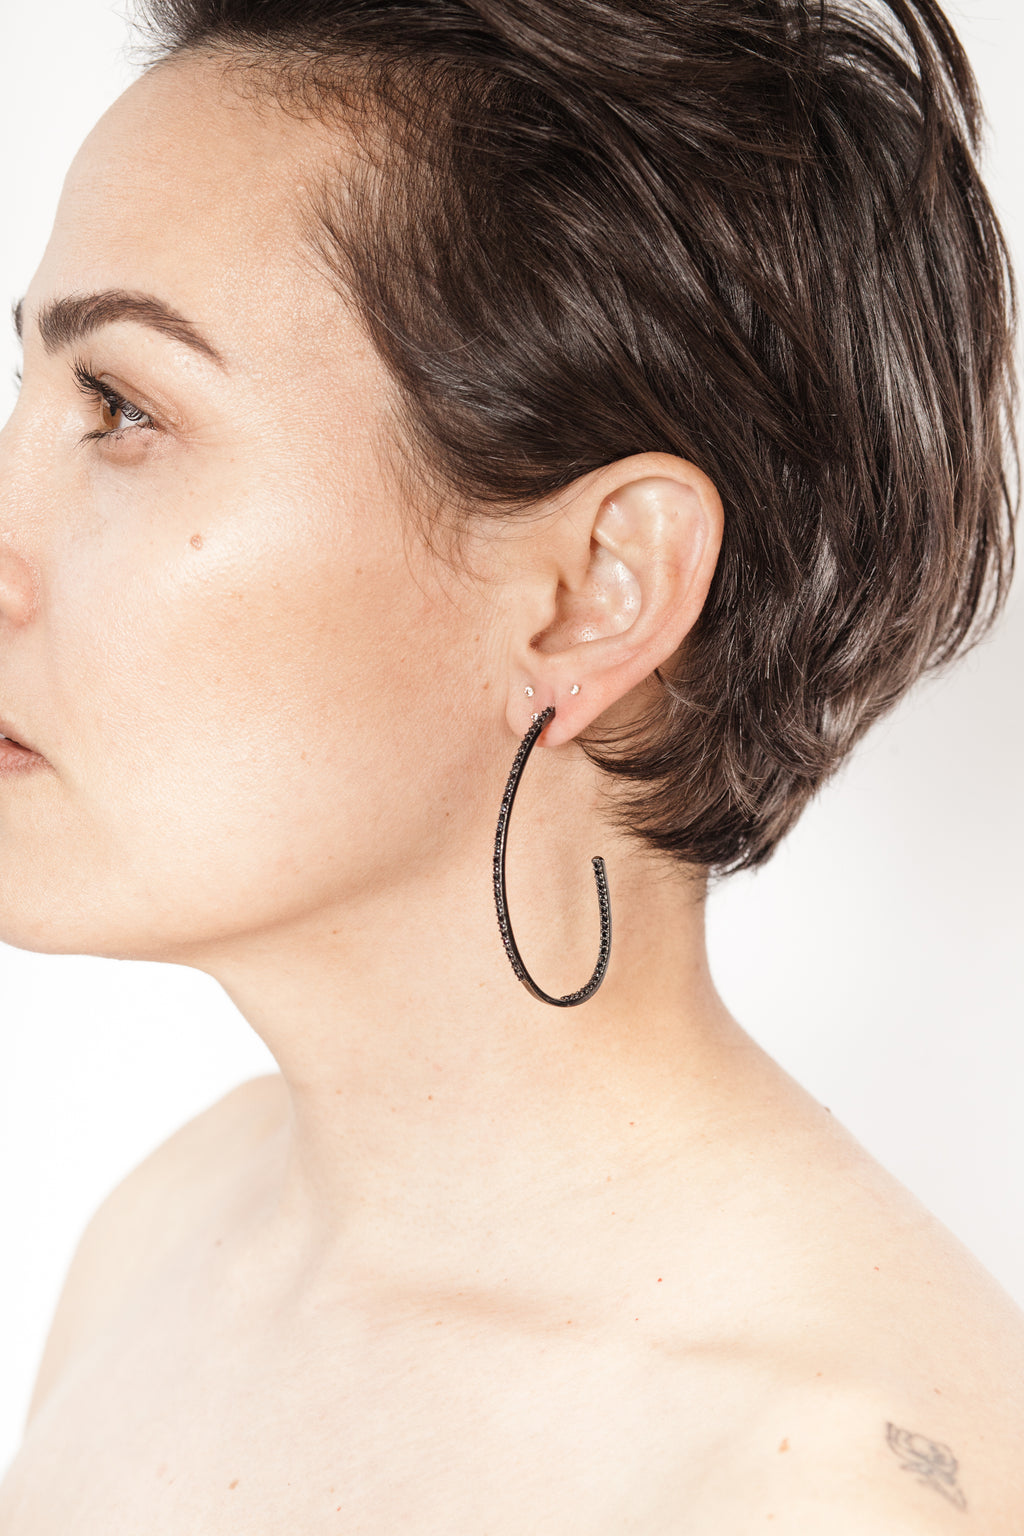 Paula Rosen spinel hoop earrings